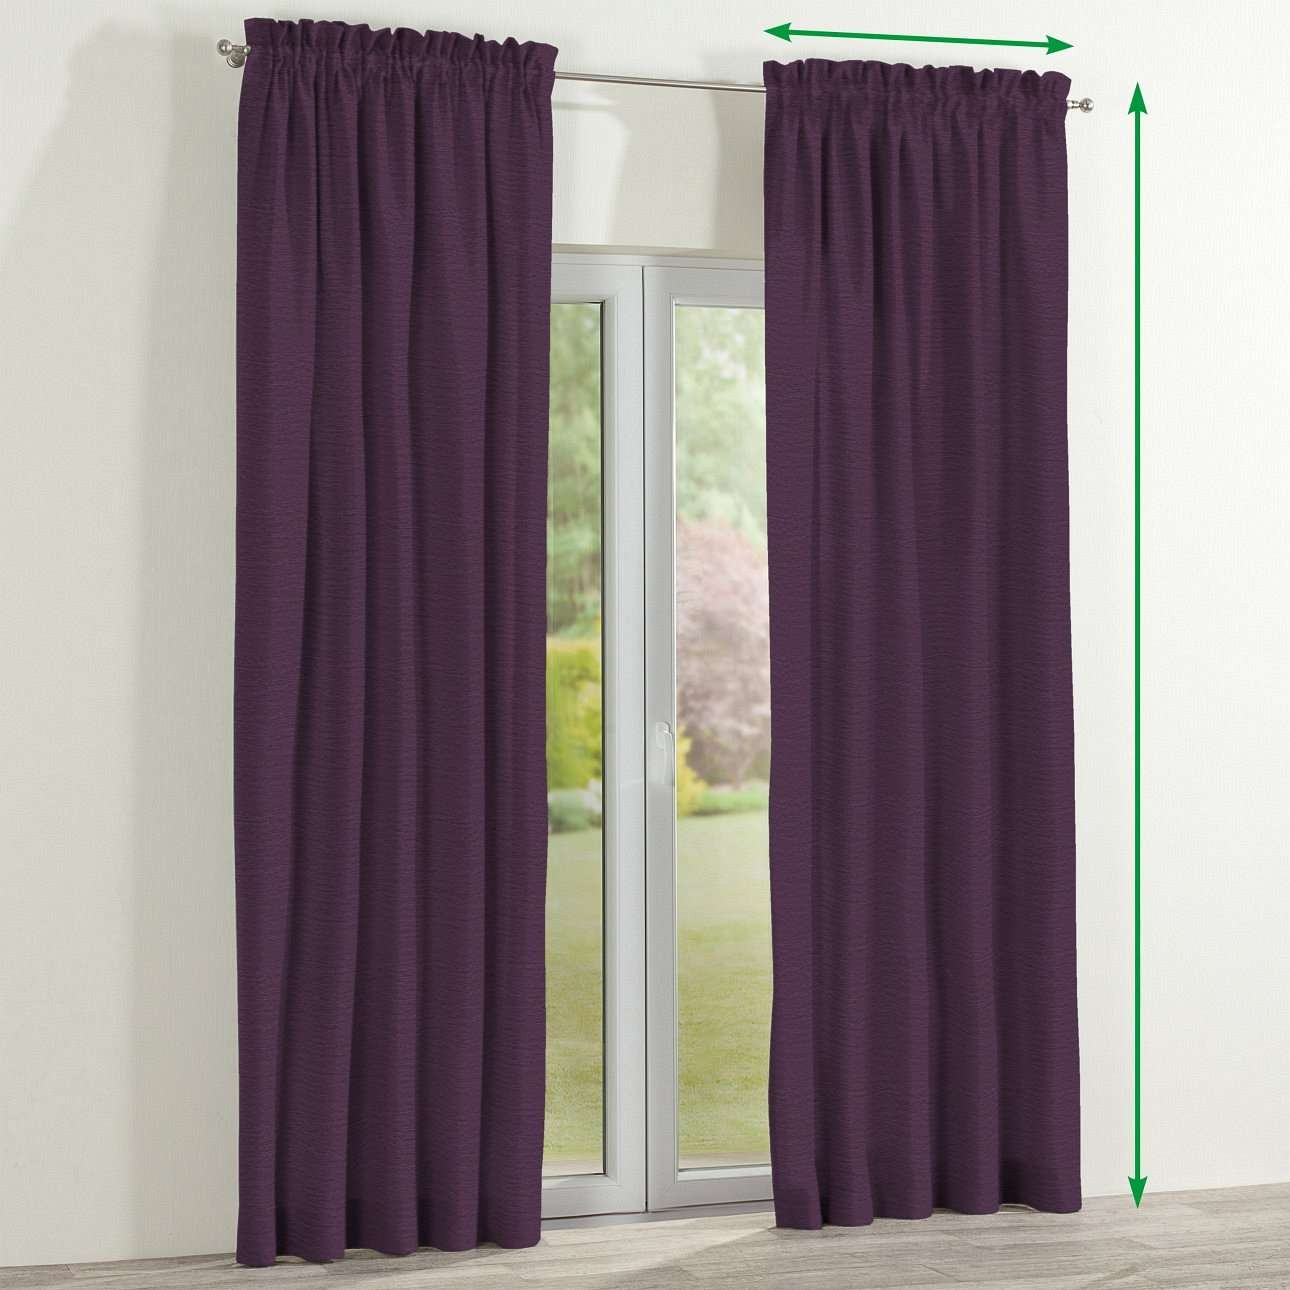 Slot and frill lined curtains in collection Chenille, fabric: 160-46